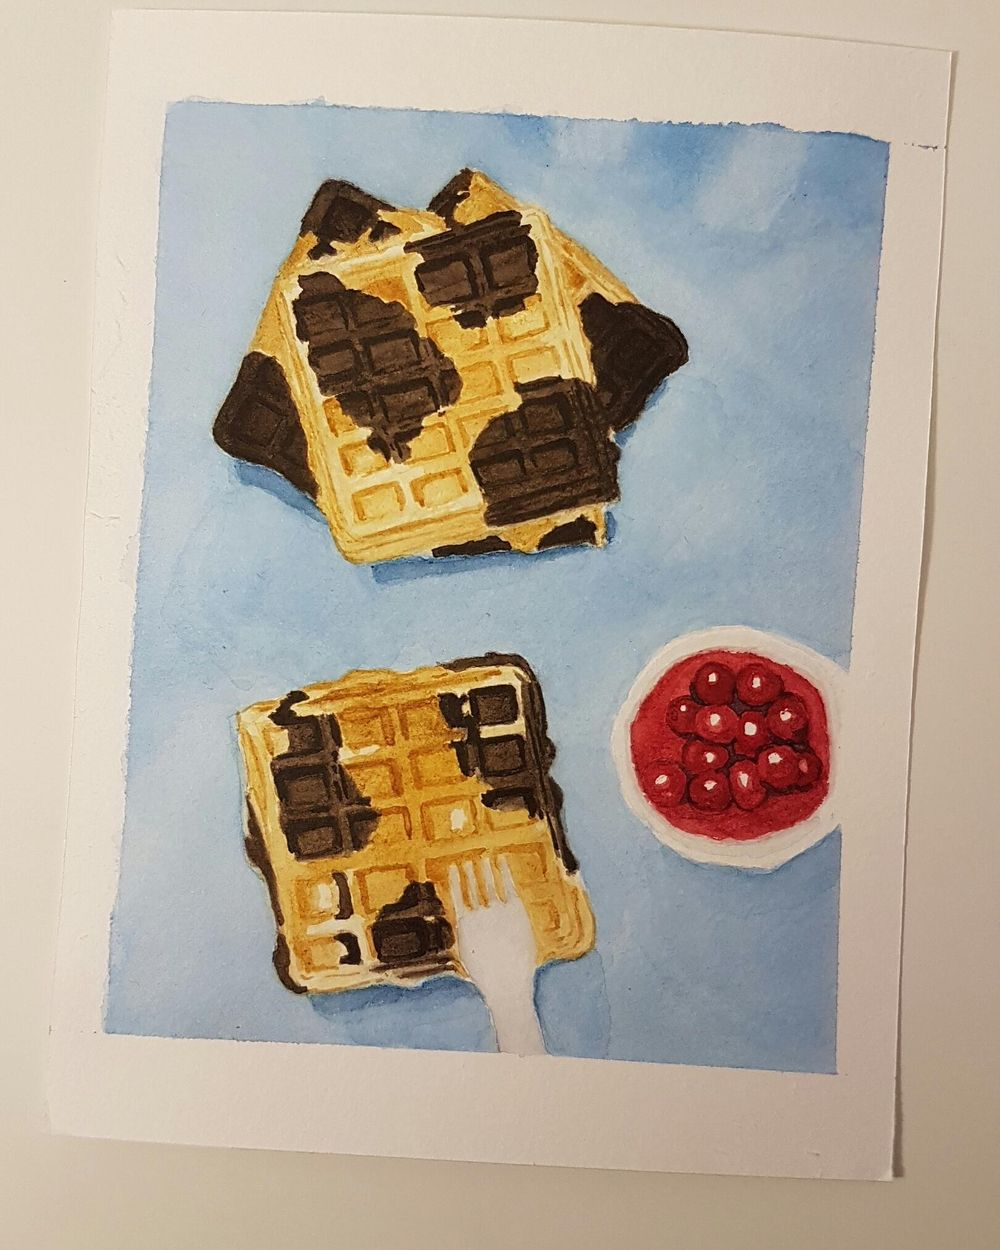 Practice Connecting things in Watercolor - Waffles - image 5 - student project